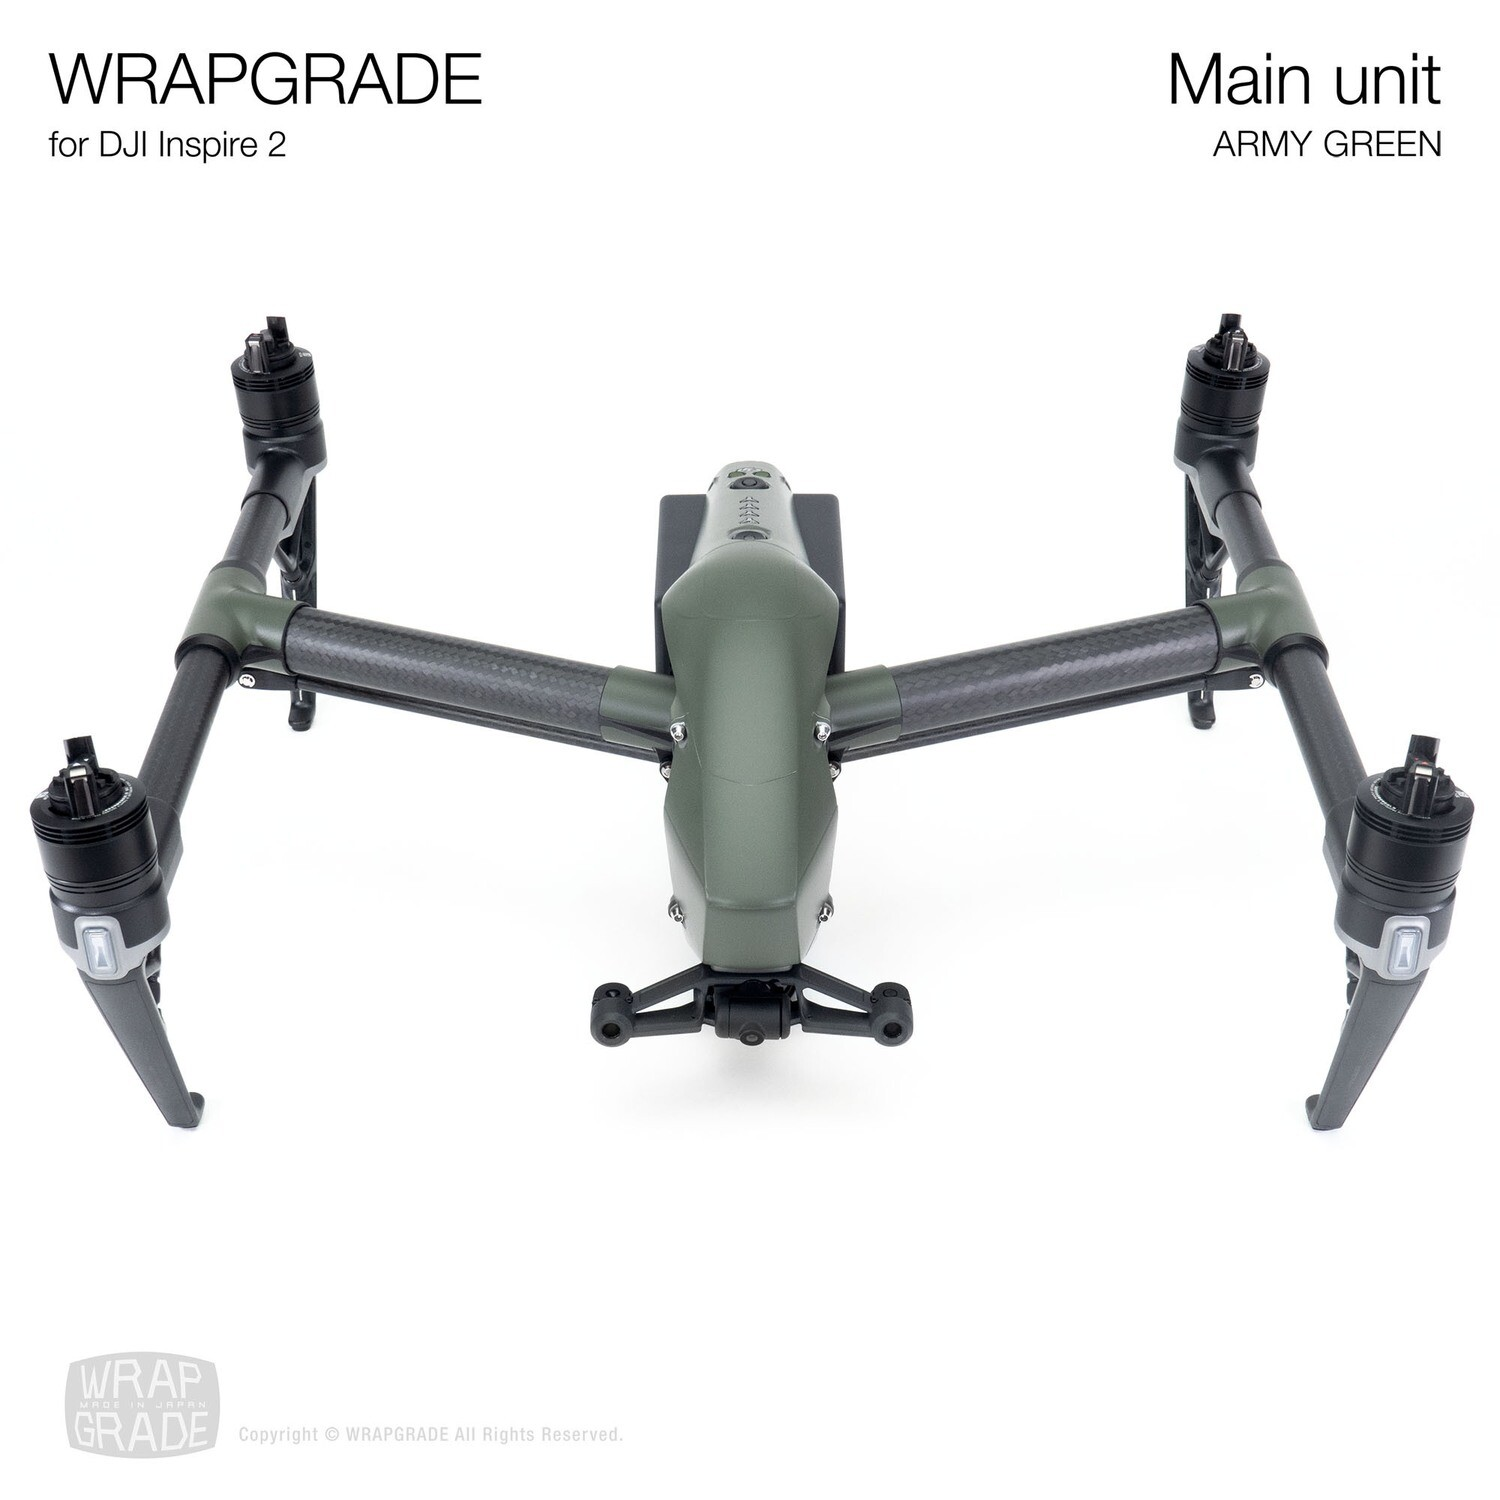 WRAPGRADE for DJI Inspire 2 | Main Unit (ARMY GREEN)